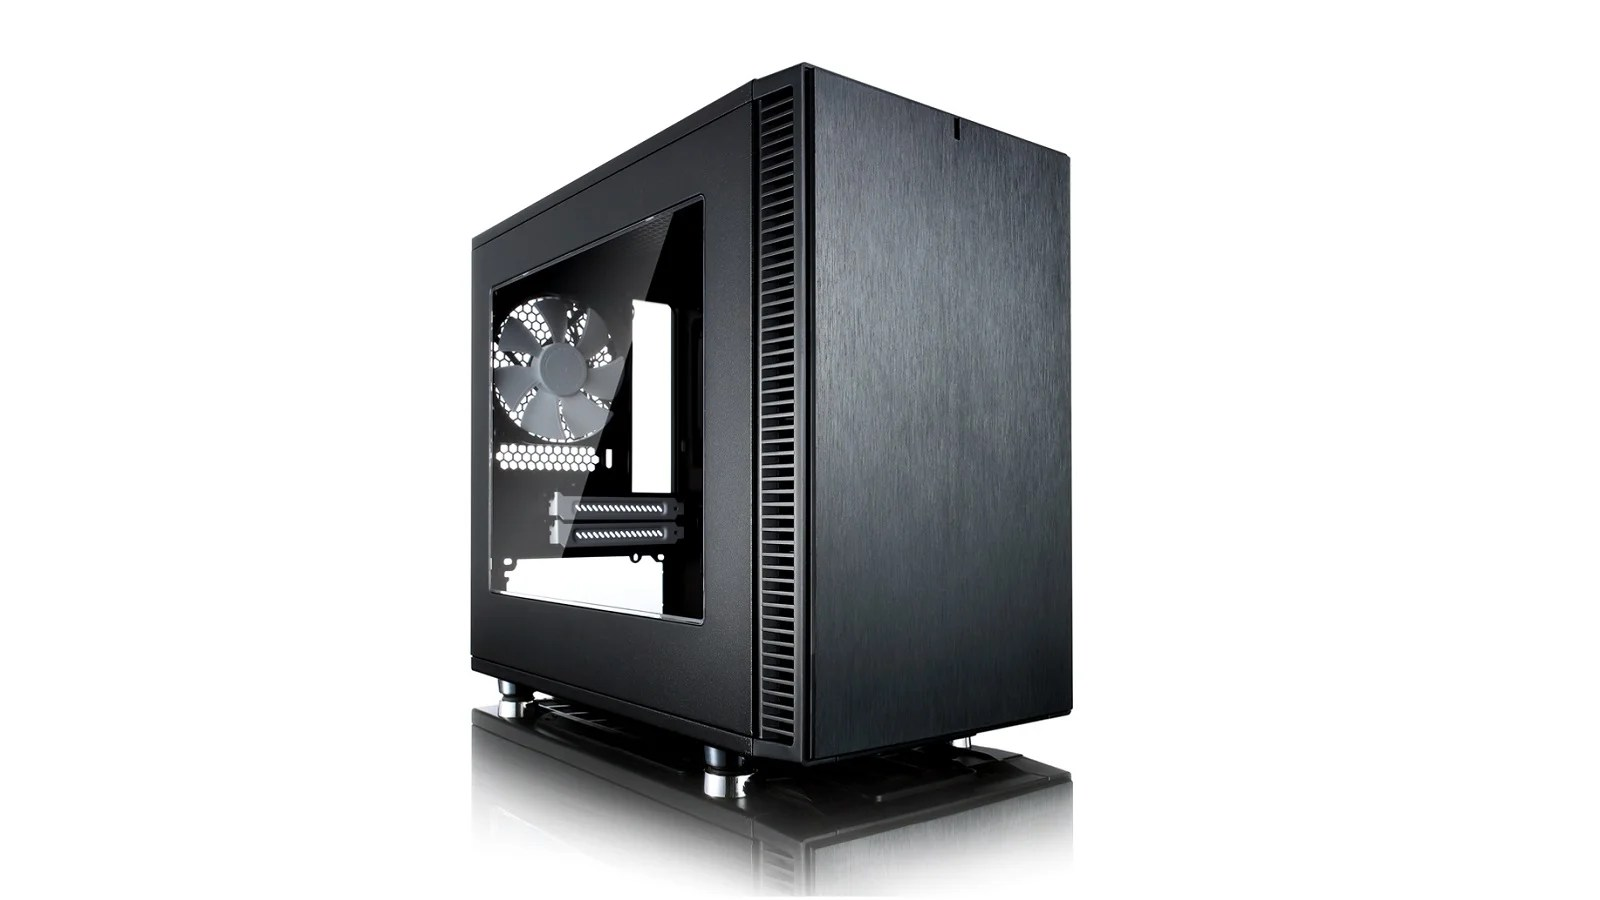 living room friendly pc case window treatment ideas for formal best cases 2018 build a quiet stylish expert reviews this dinky mini itx is the perfect housing that doesn t dominate your desk internal layout same as regular atx